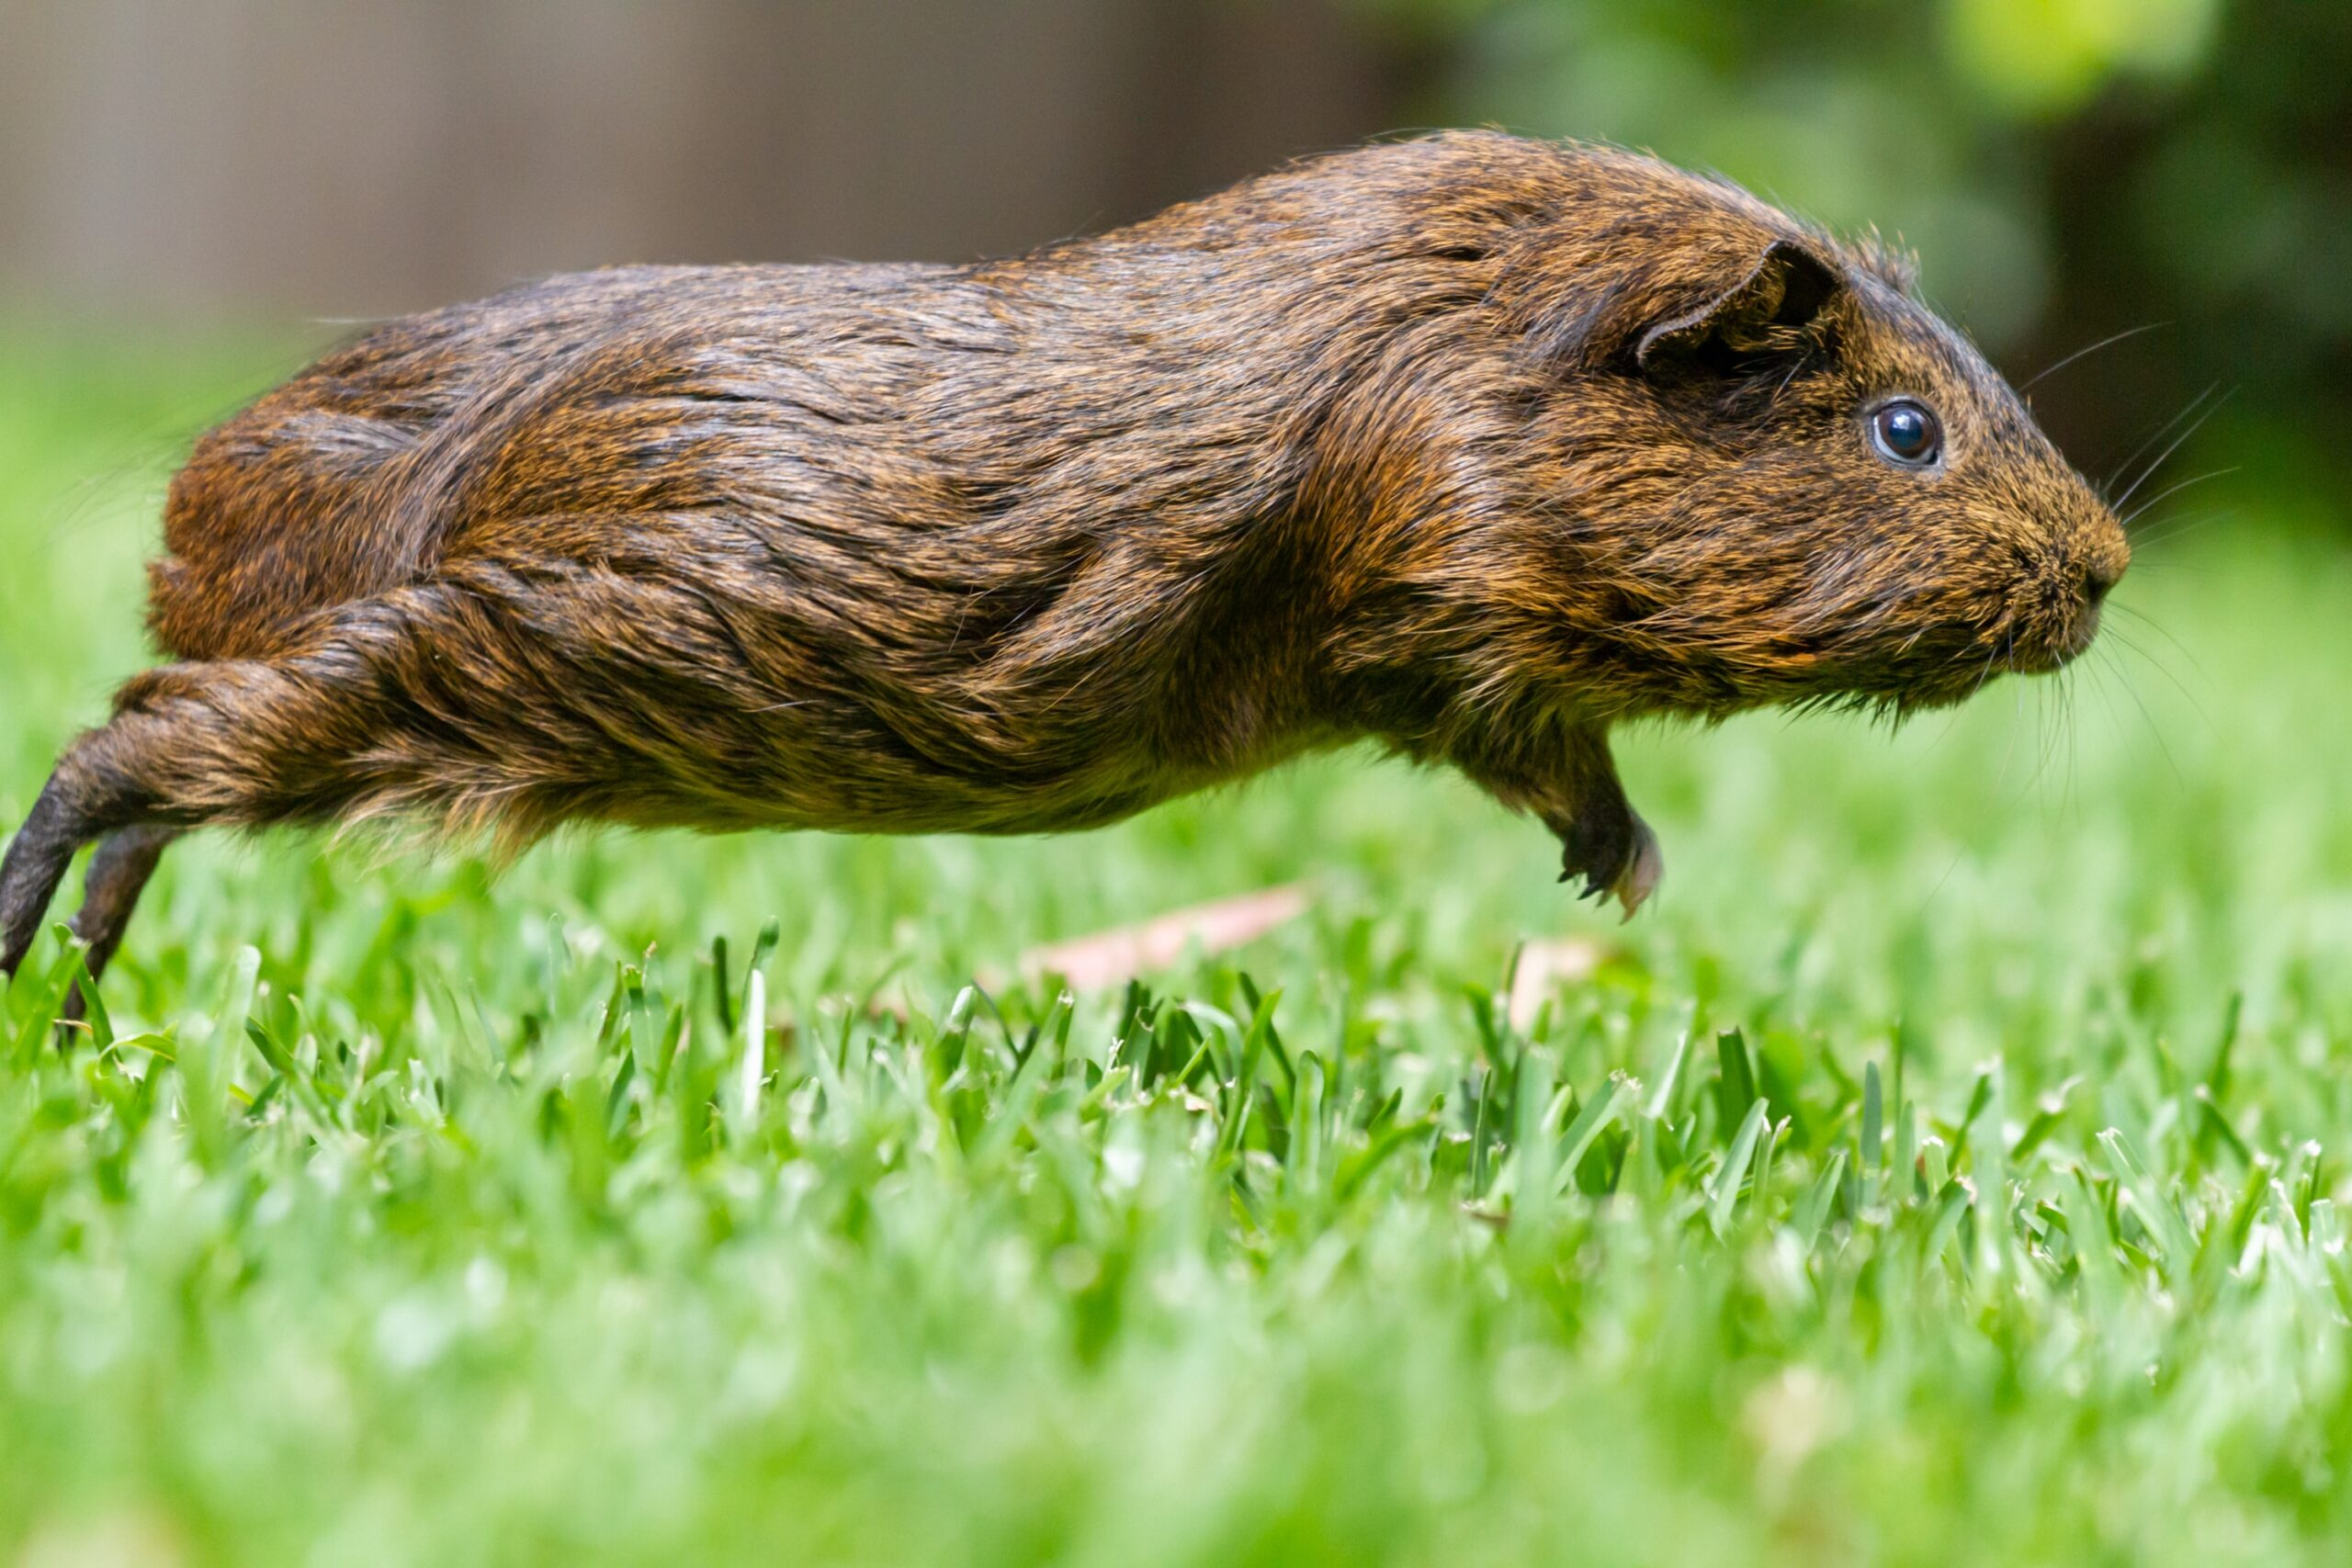 A guinea pig leaping through the grass